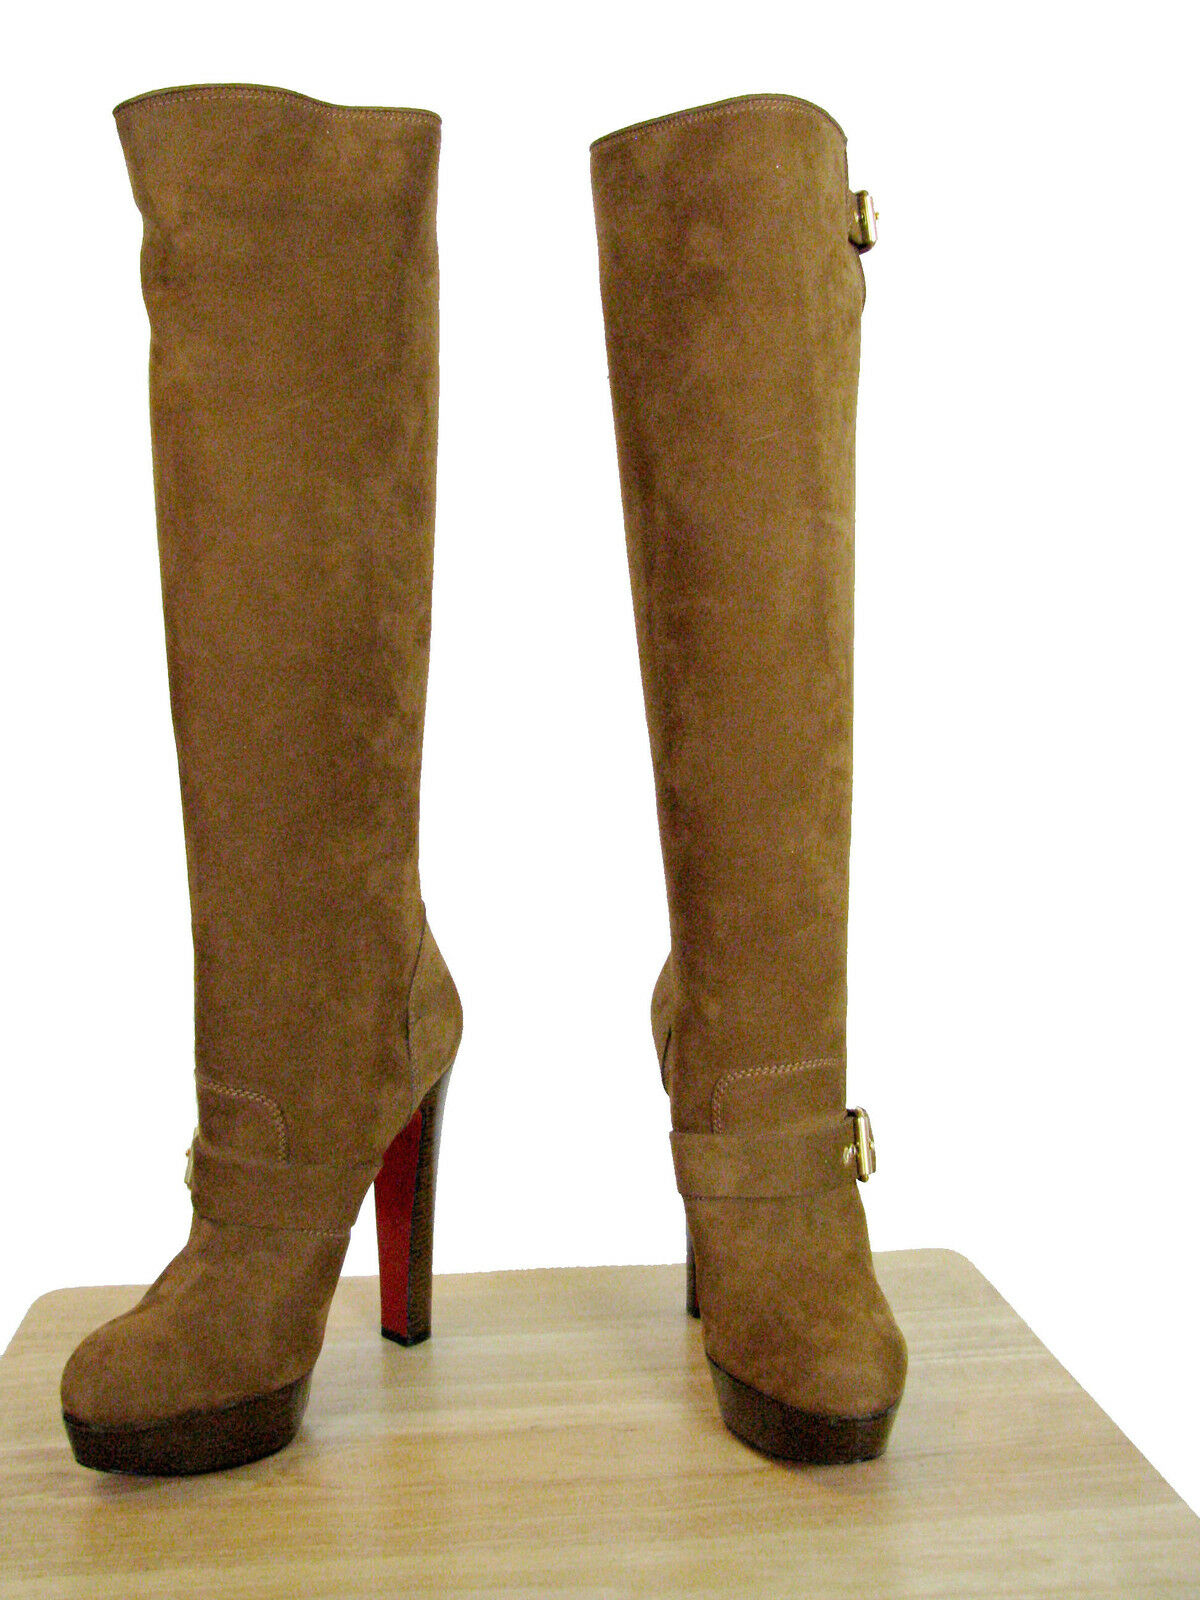 1695 CRISTIAN LOUBOUTIN HARLETTY 140 BUCKLED CALF SUEDE BOOTS 41 NIB